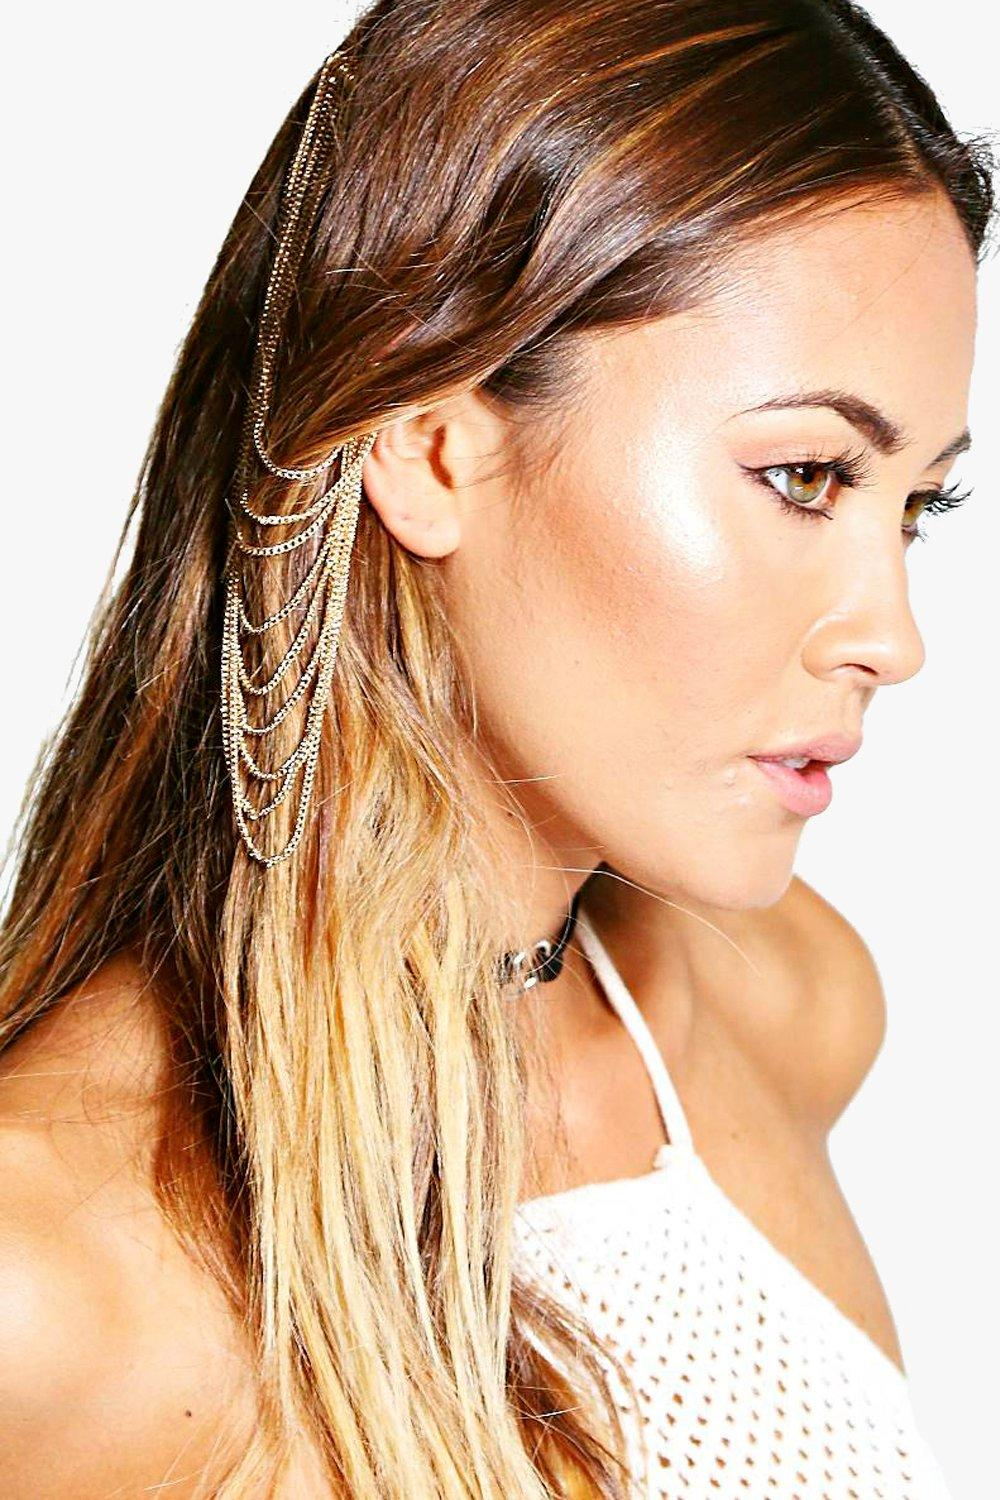 Anna Multi Chain Hair Pin and Ear Cuff